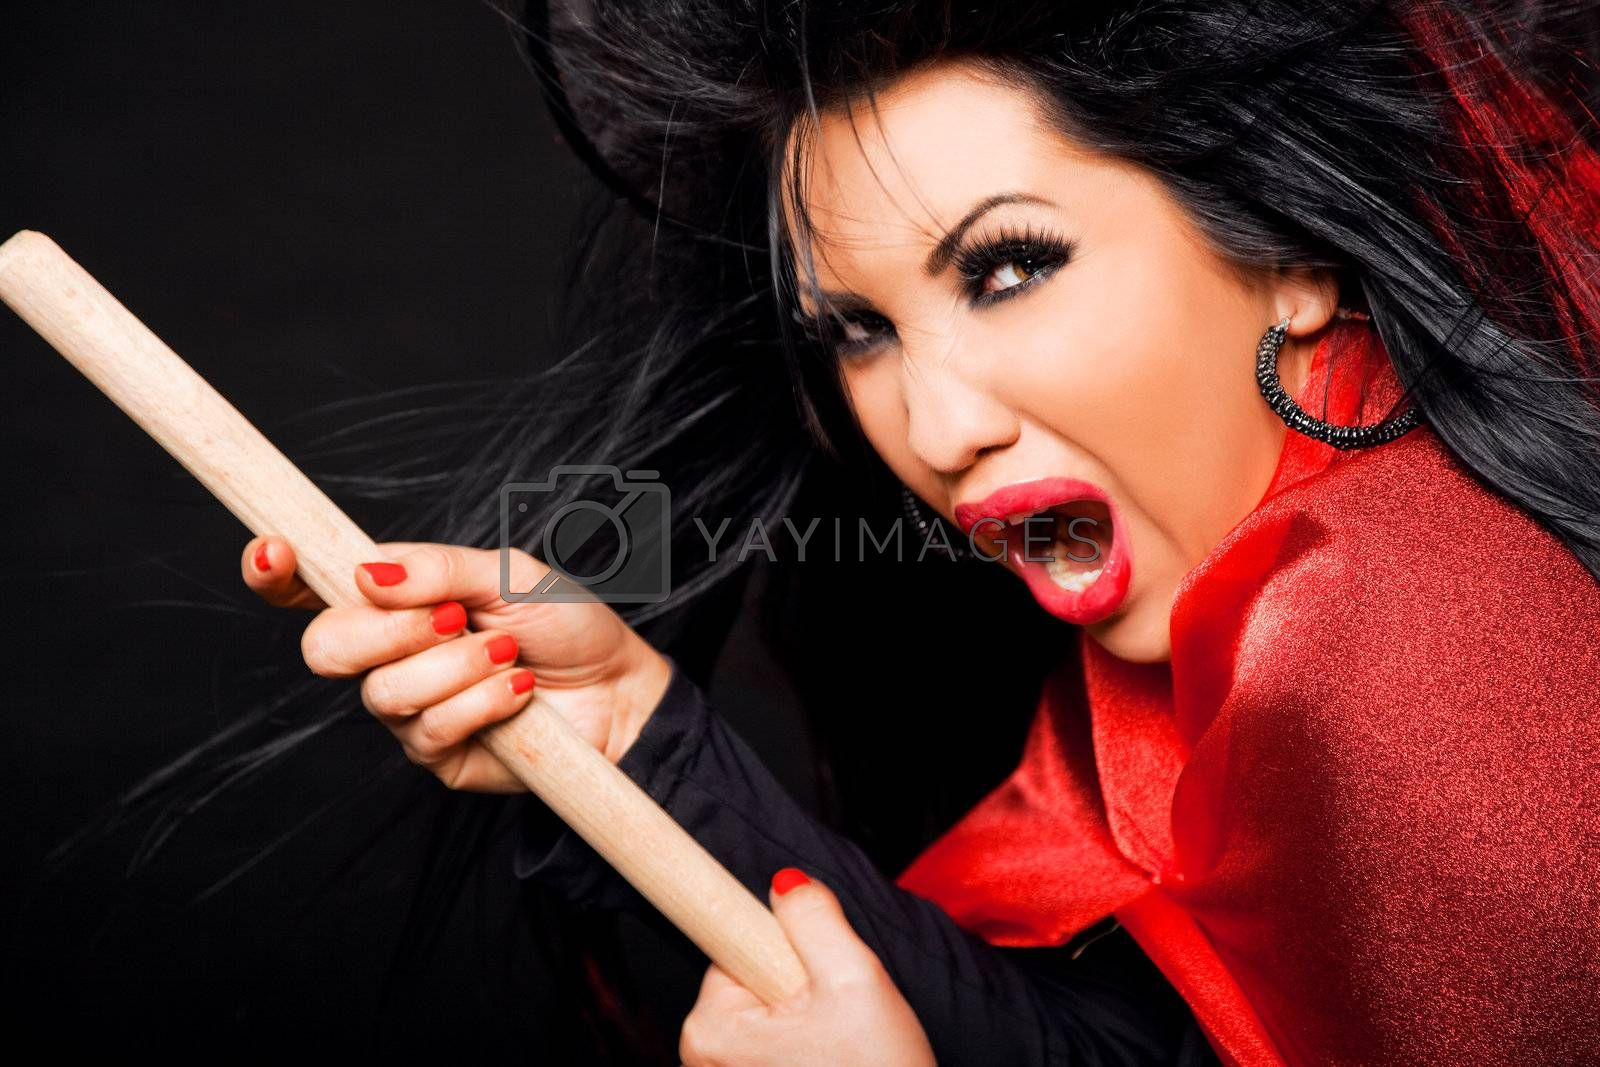 femalewitch with broomstick, looking scary and screaming